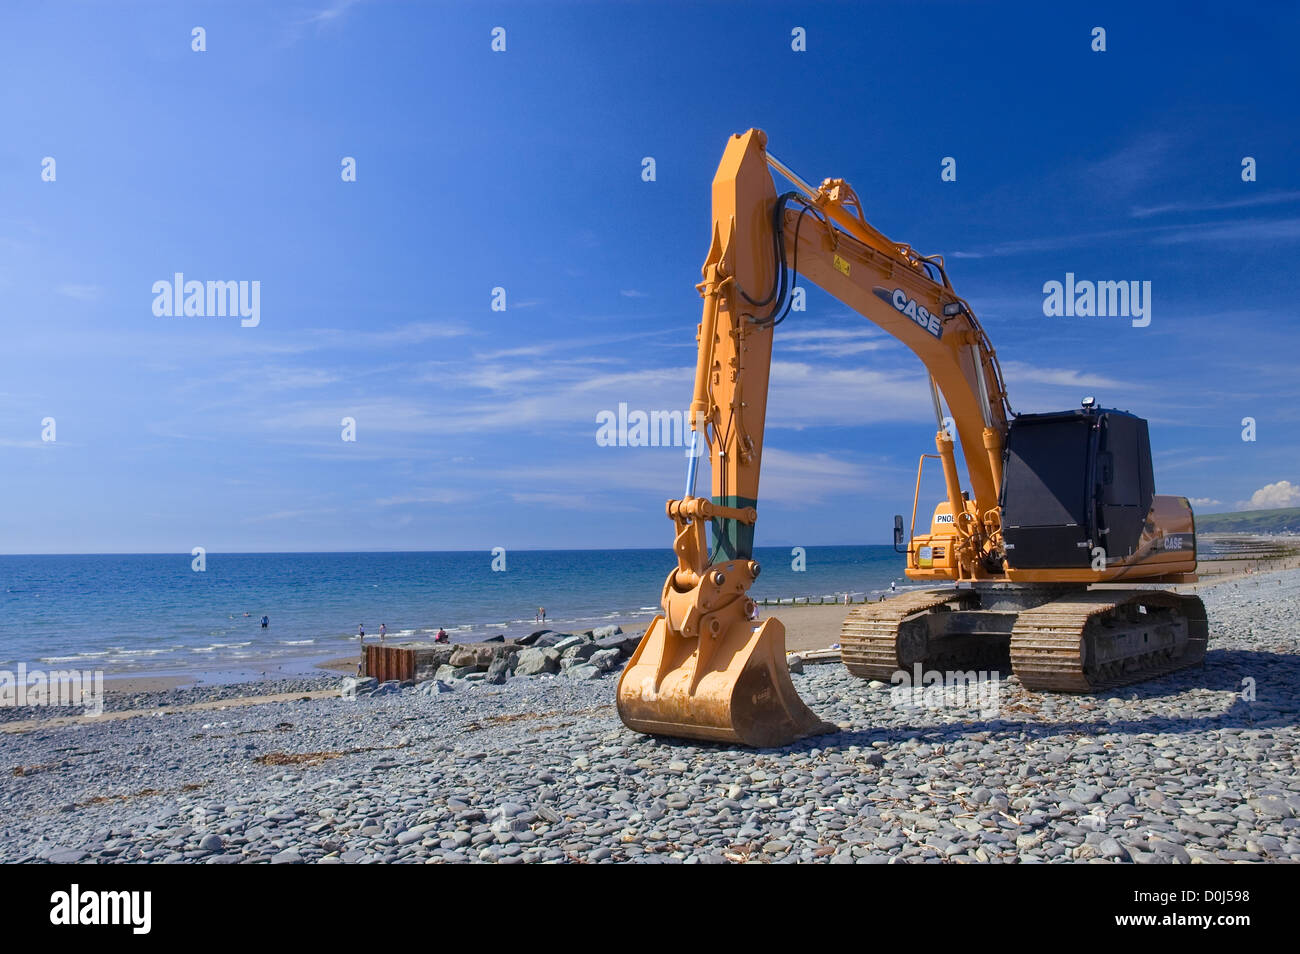 A mechanical digger on the beach at Borth. - Stock Image